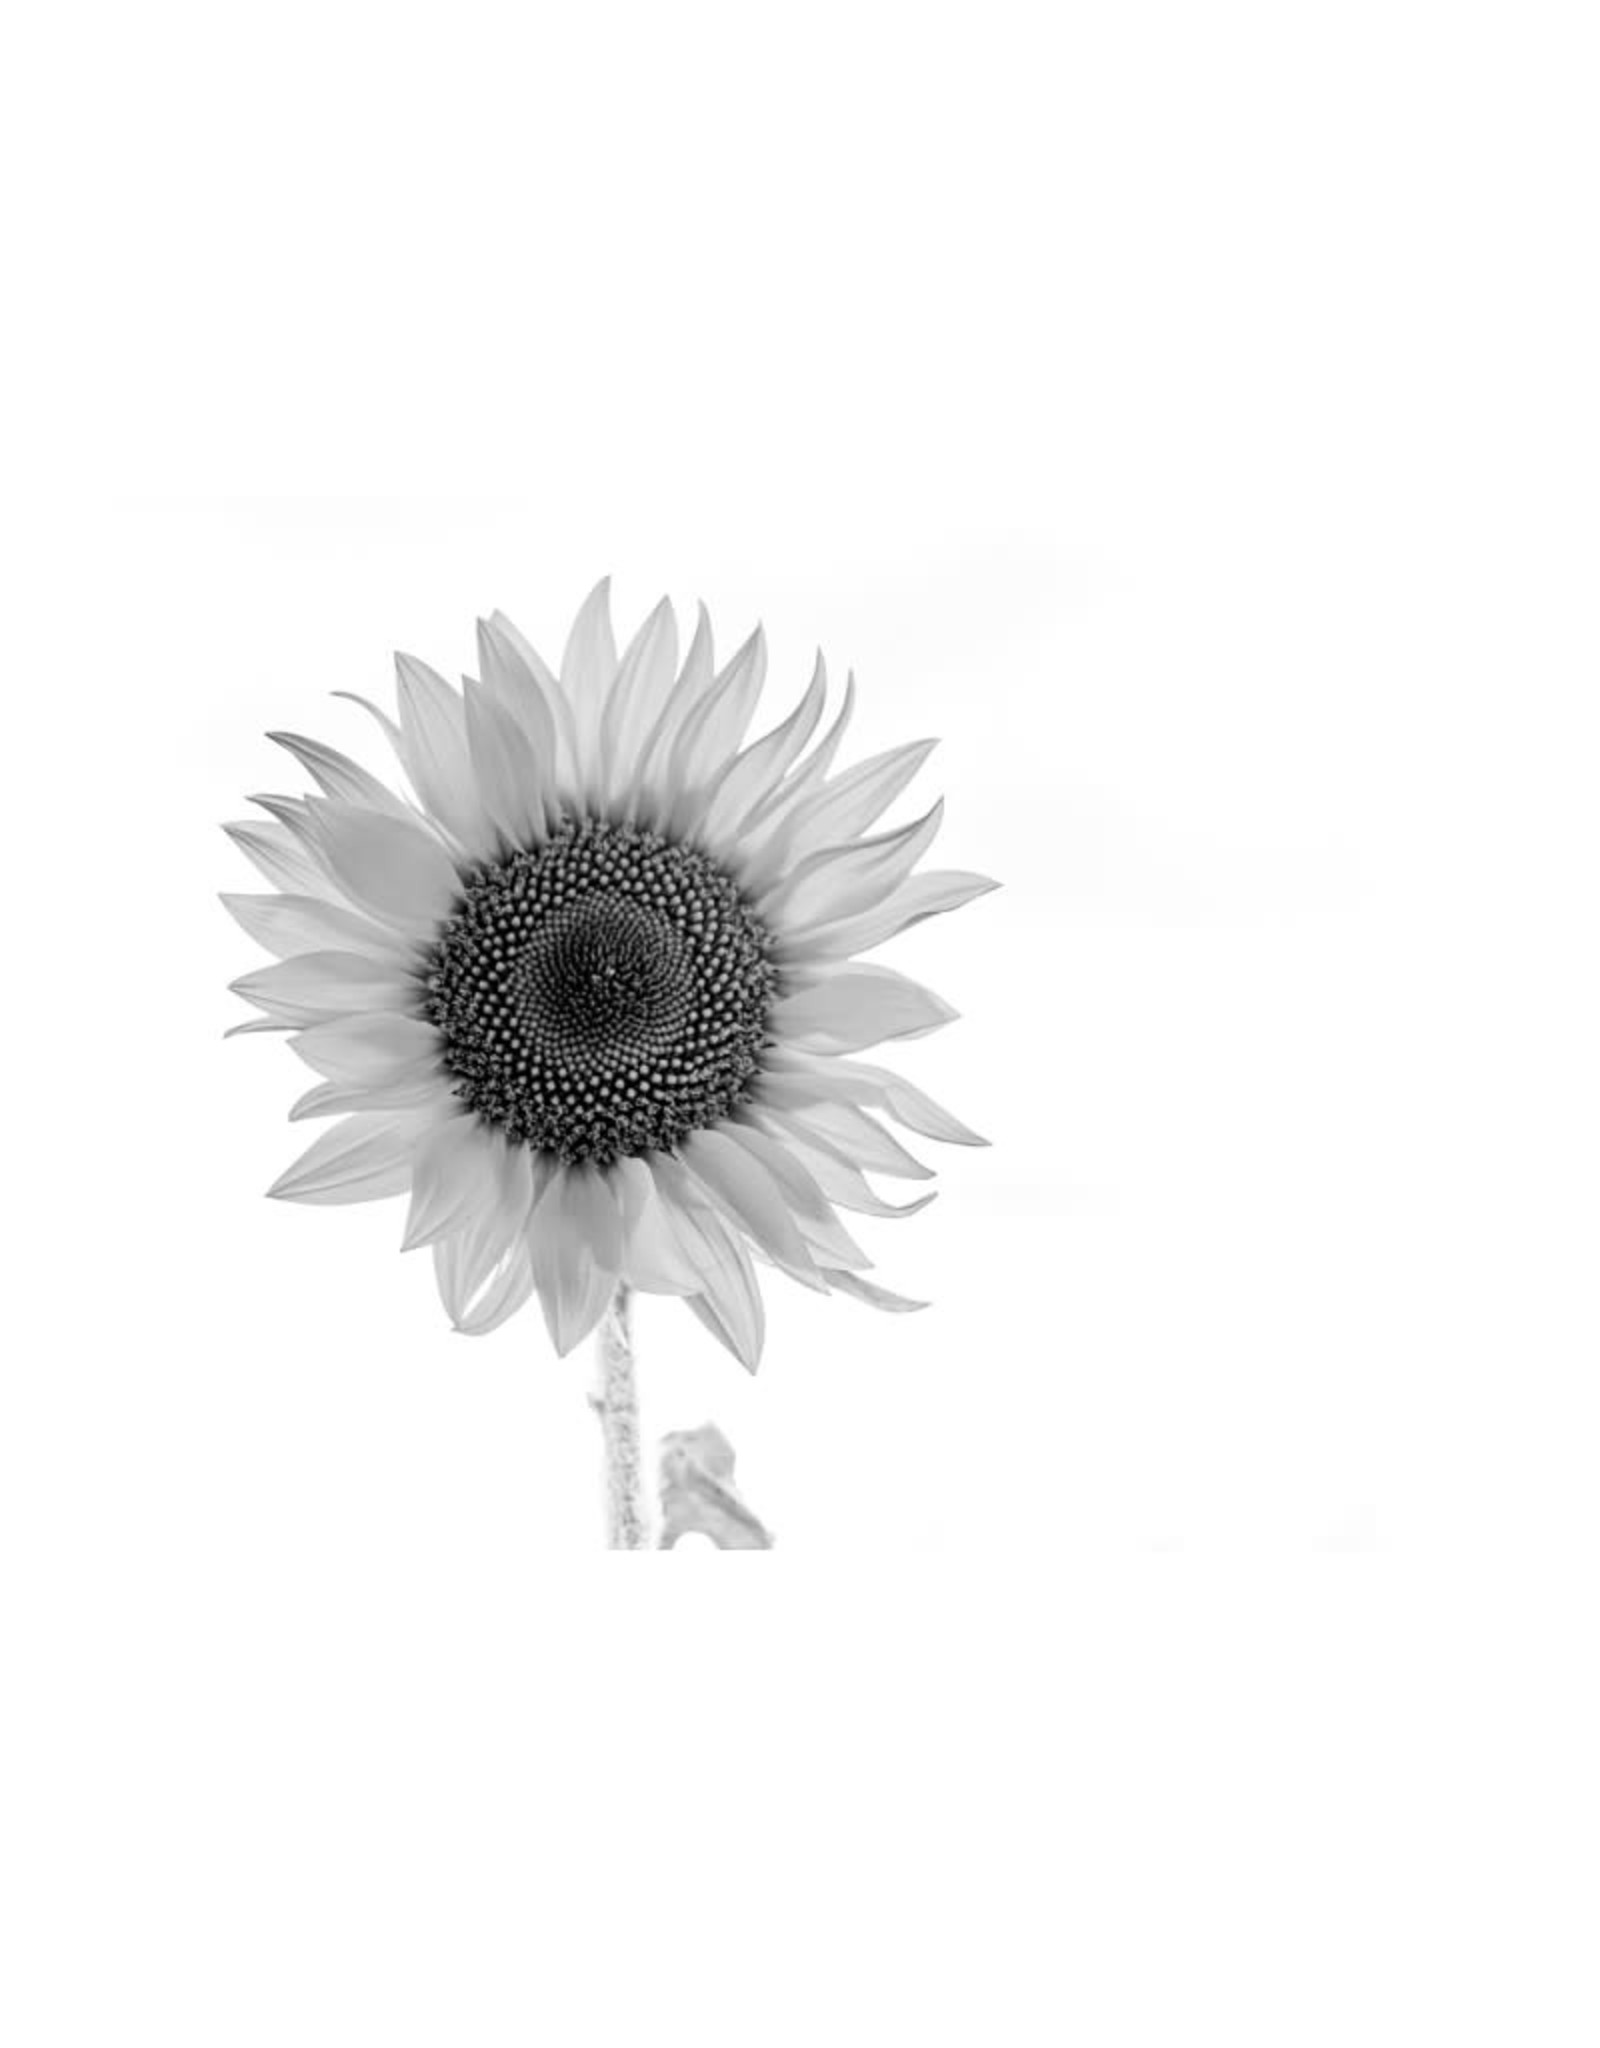 Nick Irwin Images Sunny Disposition Black & White